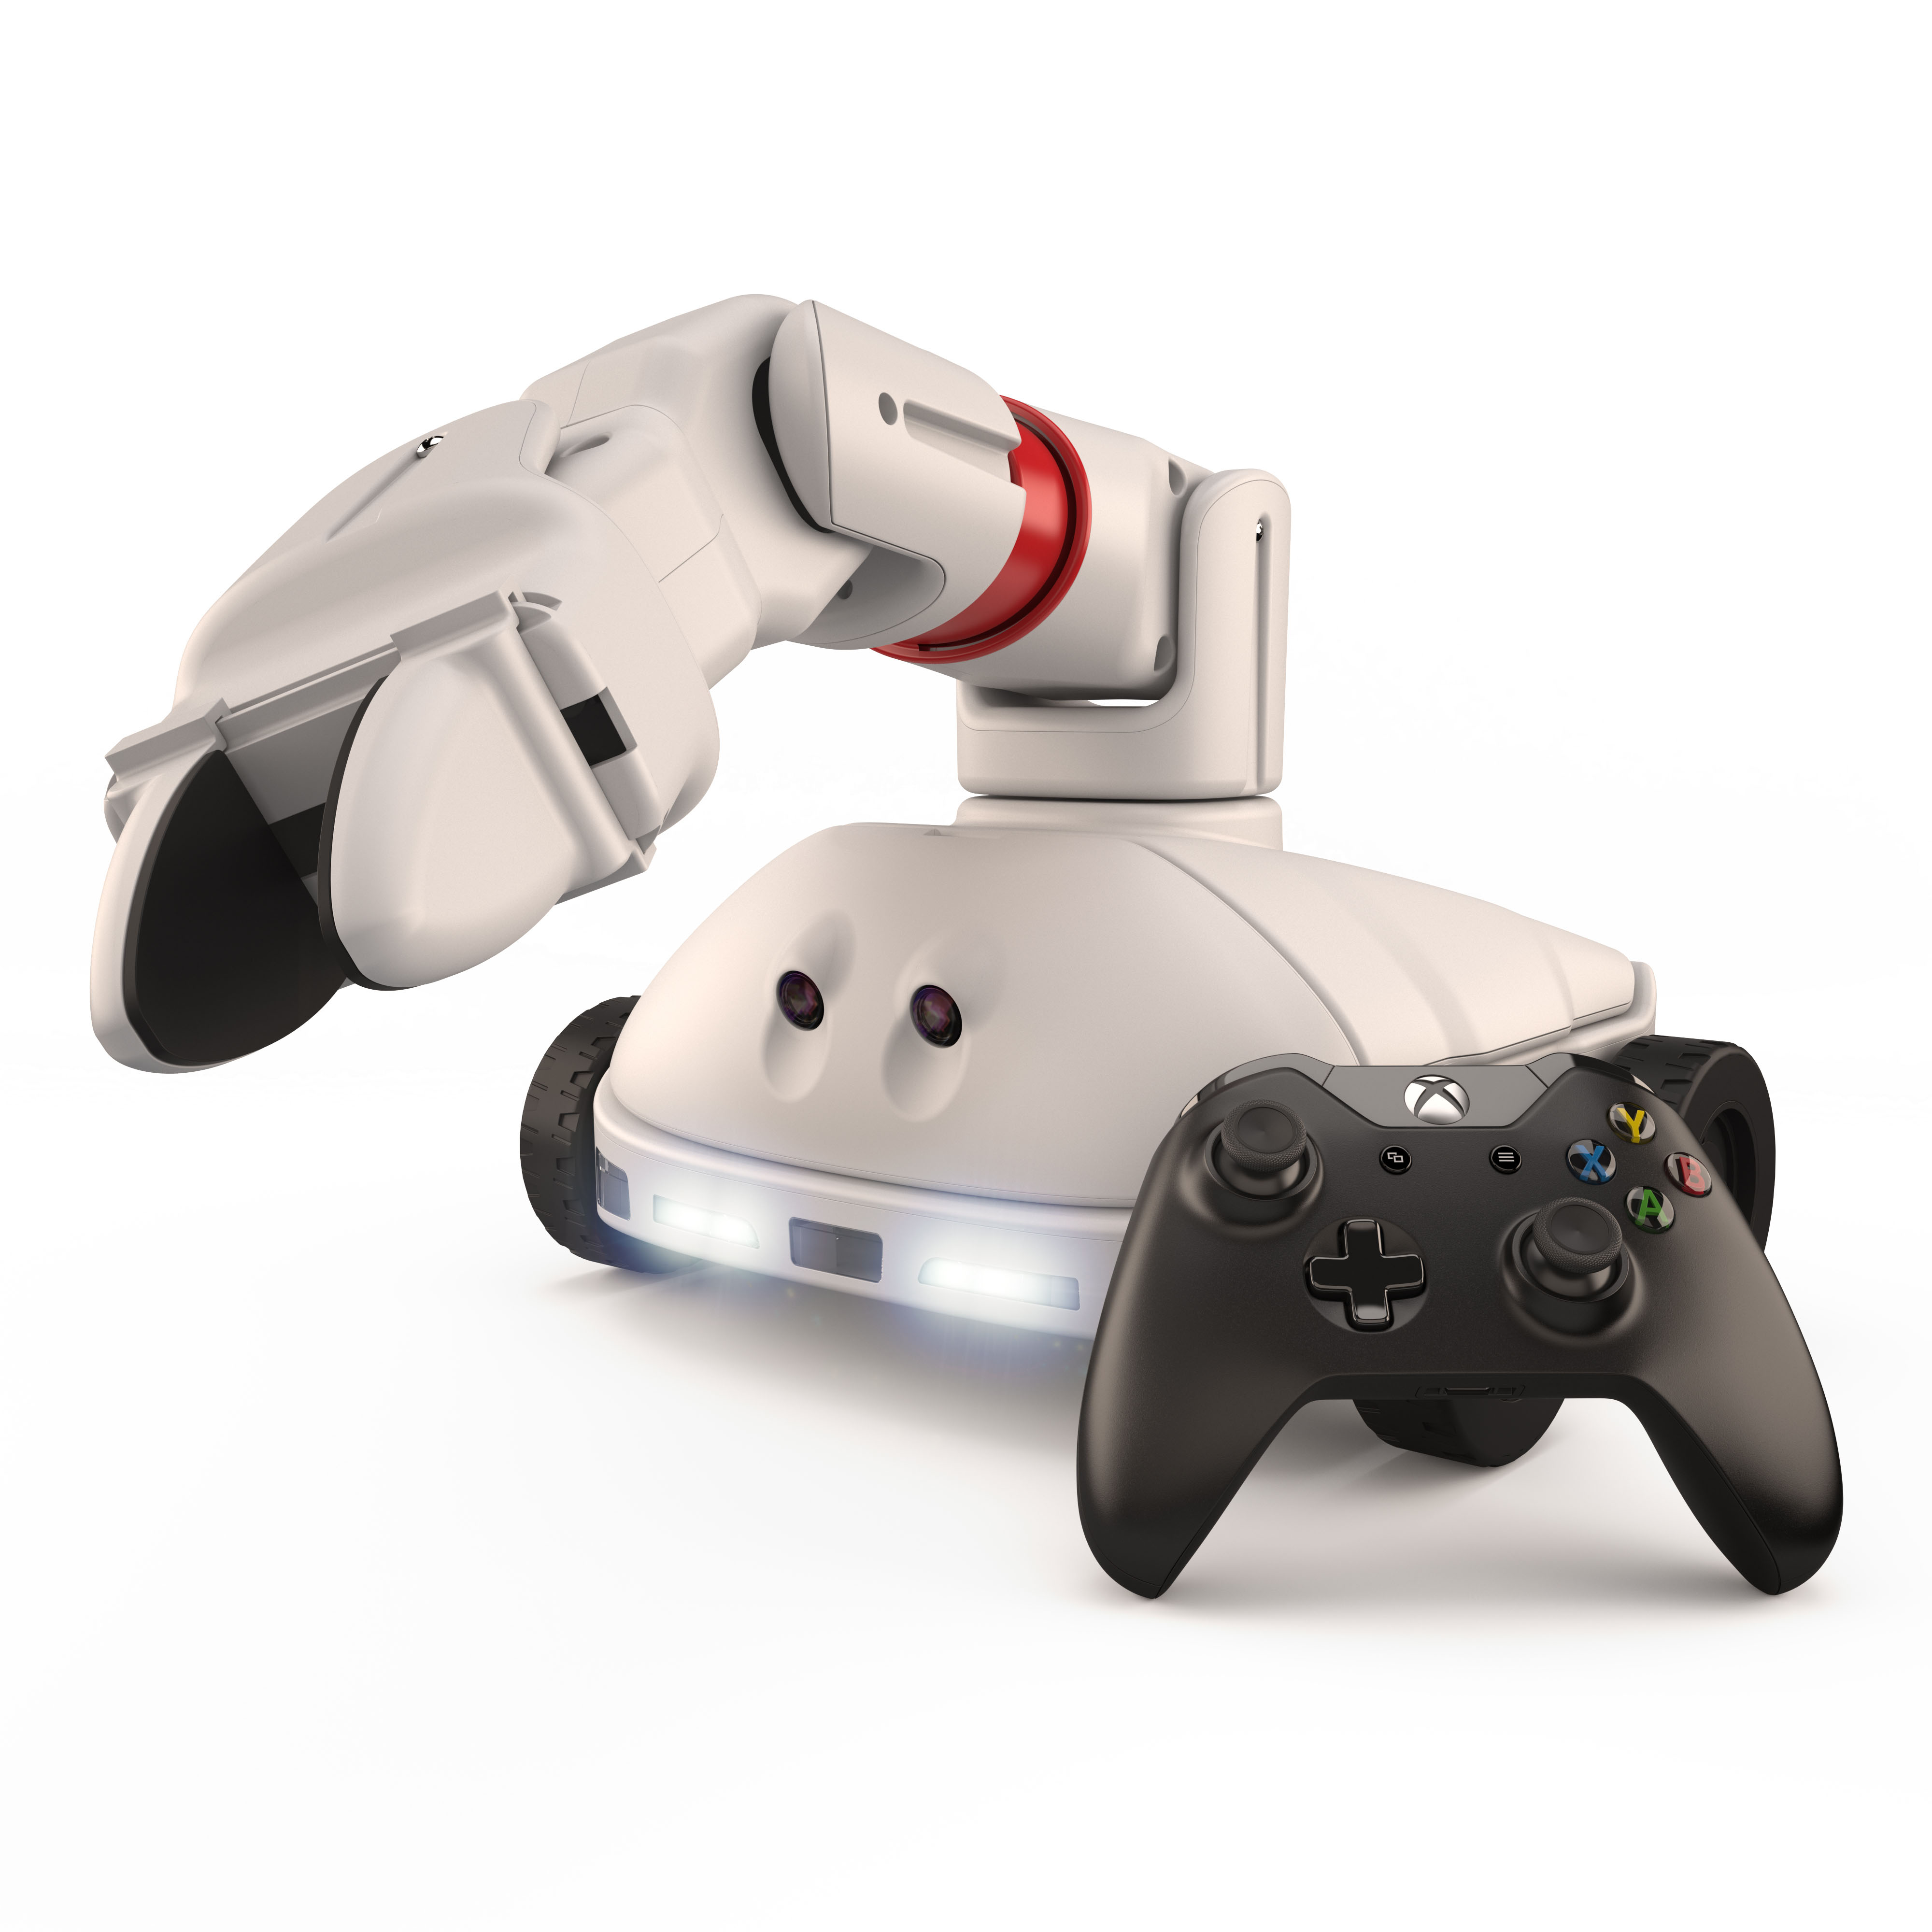 Robotic device with wheels, arm, and XBox 360 controller